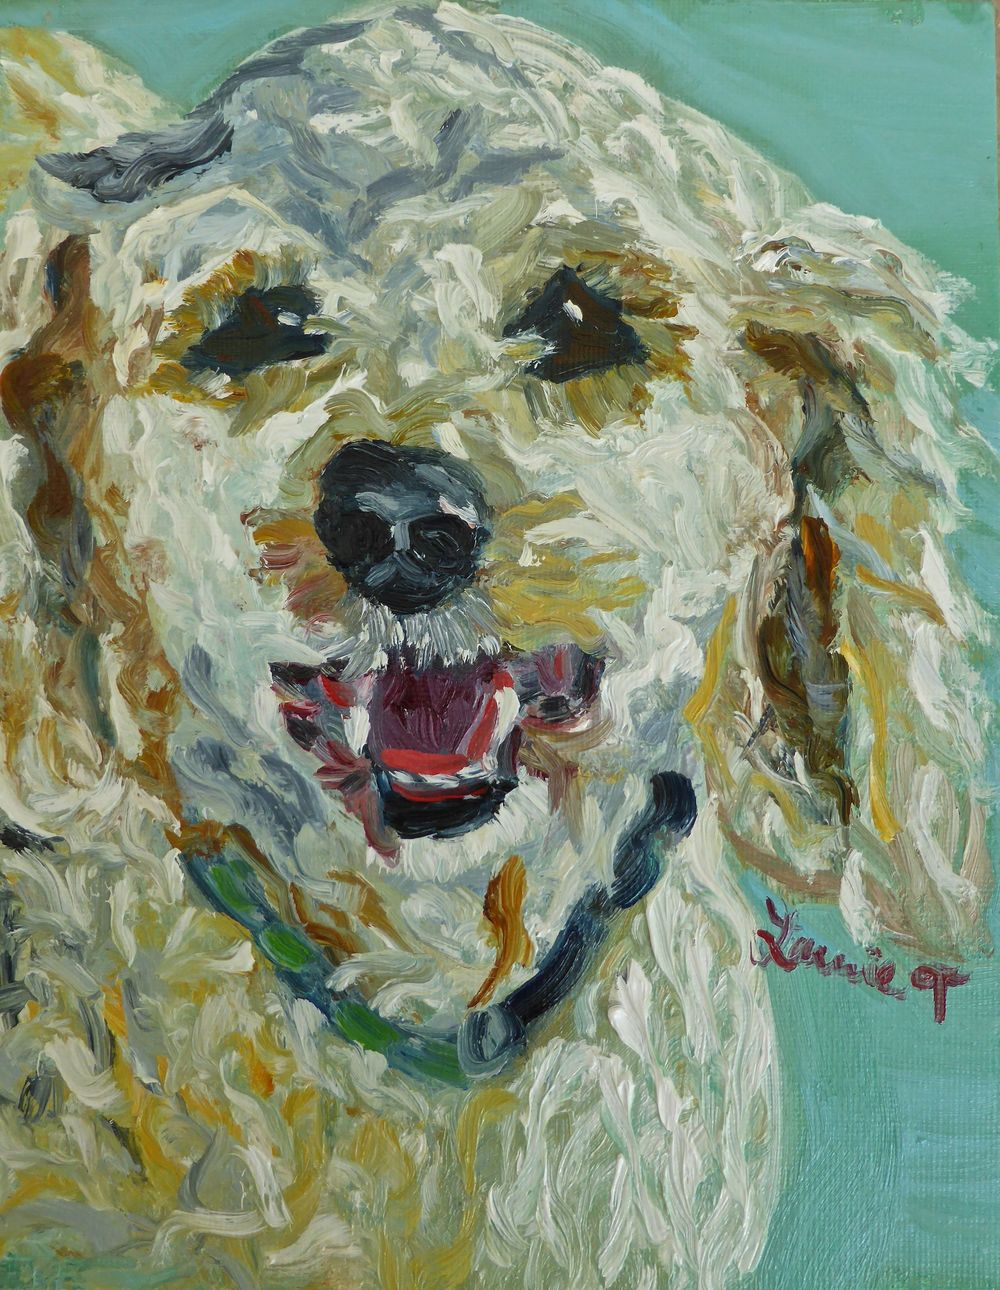 Hi Laurie, lovely painting,Portrait looks great!  I love the turquoise background! Stephanie 2015